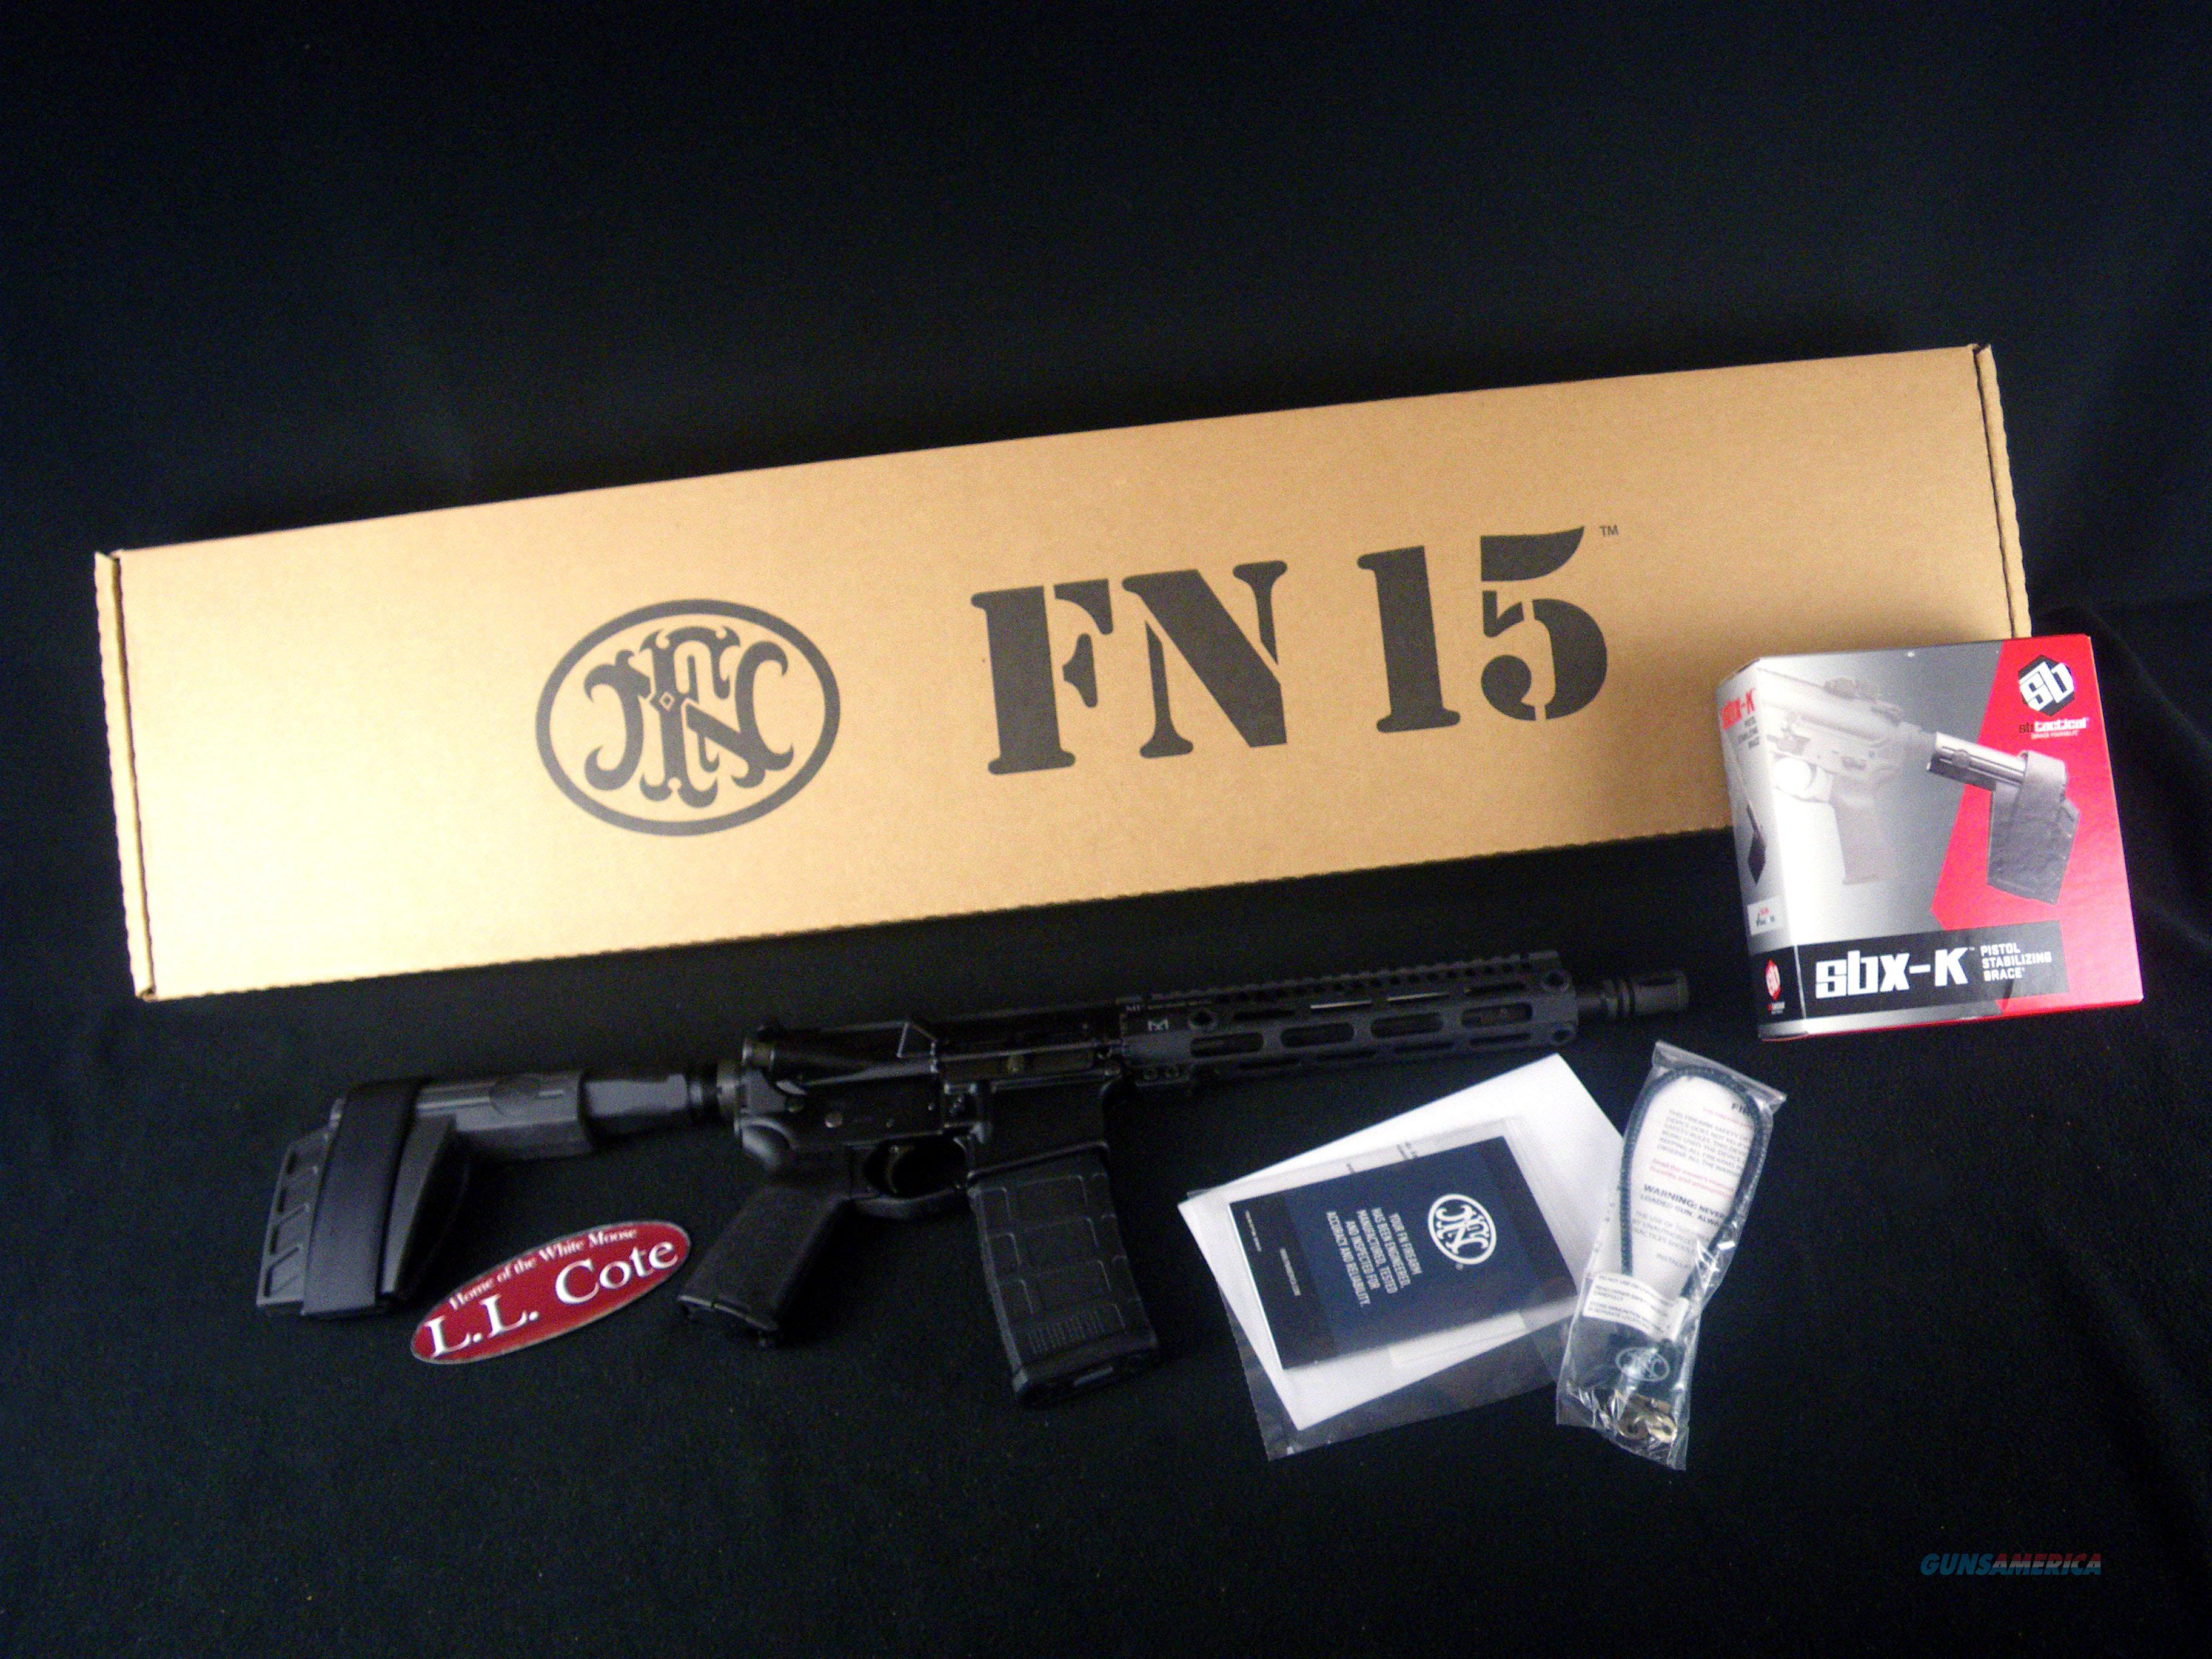 "FNH FN-15 Pistol 5.56mm NATO 10.5"" NEW 36322  Guns > Pistols > FNH - Fabrique Nationale (FN) Pistols > FNS"